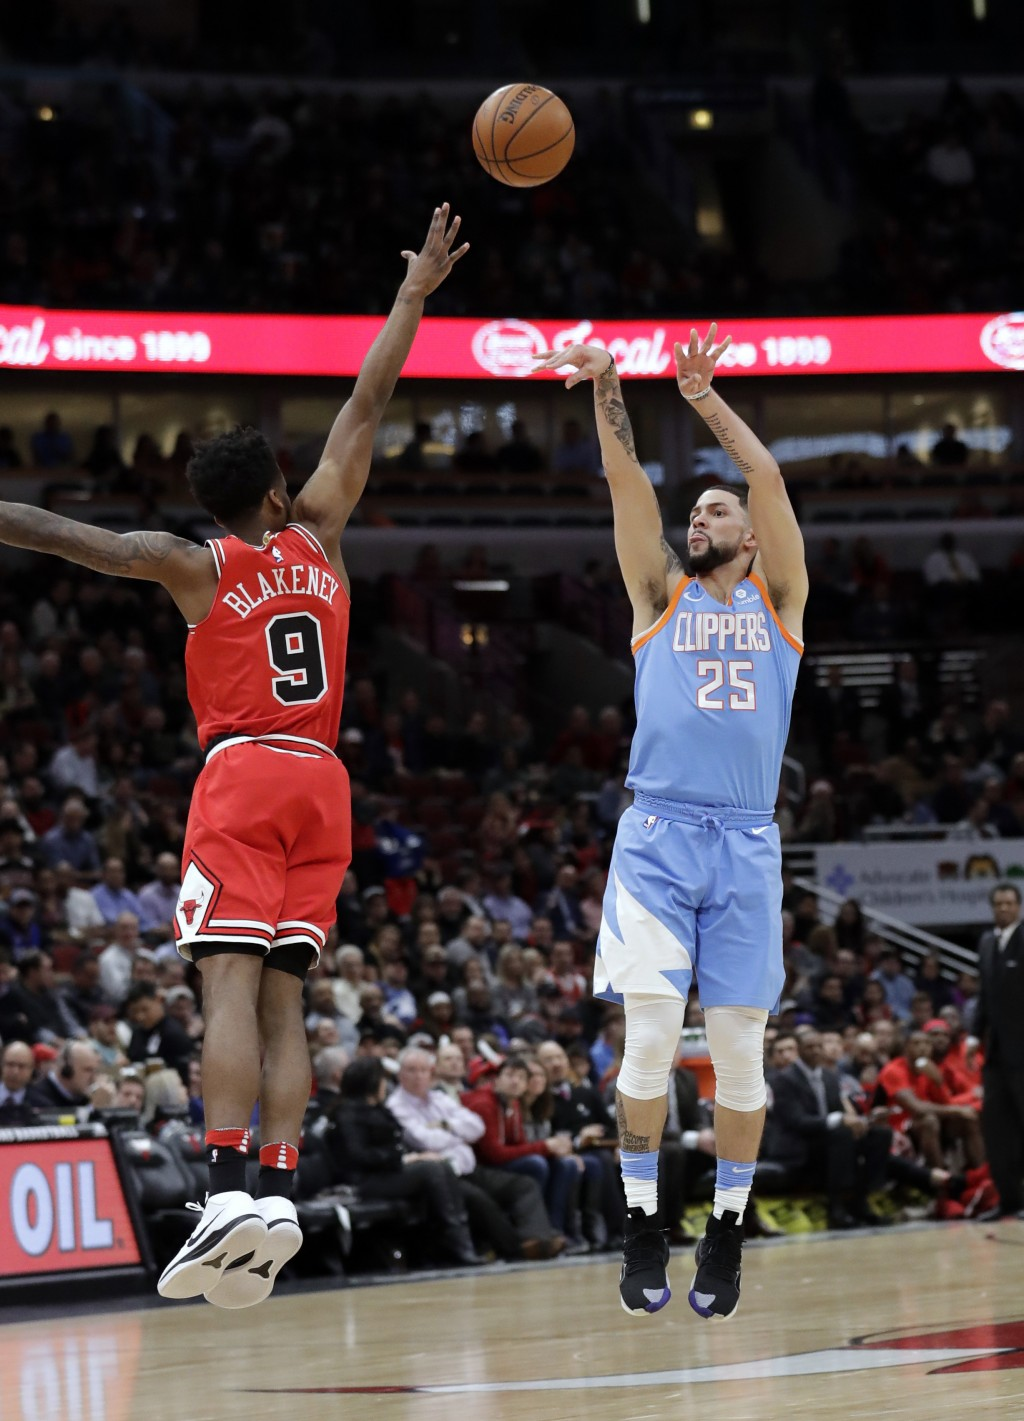 Los Angeles Clippers guard Austin Rivers, right, shoots over Chicago Bulls guard Antonio Blakeney during the first half of an NBA basketball game, Tue